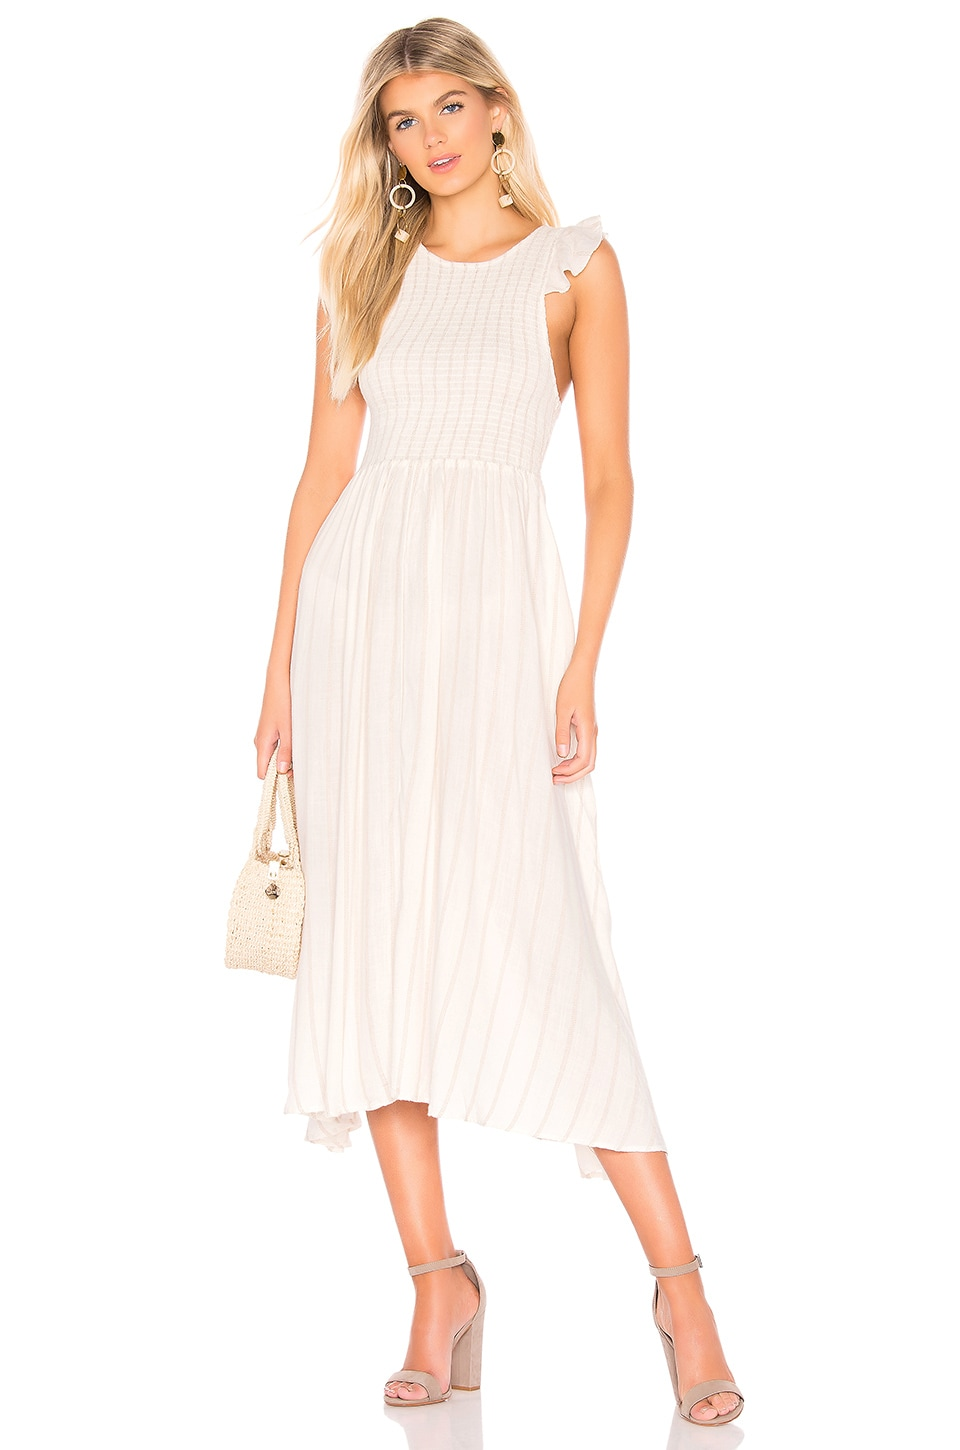 Free People Chambray Butterflies Midi Dress in Ivory